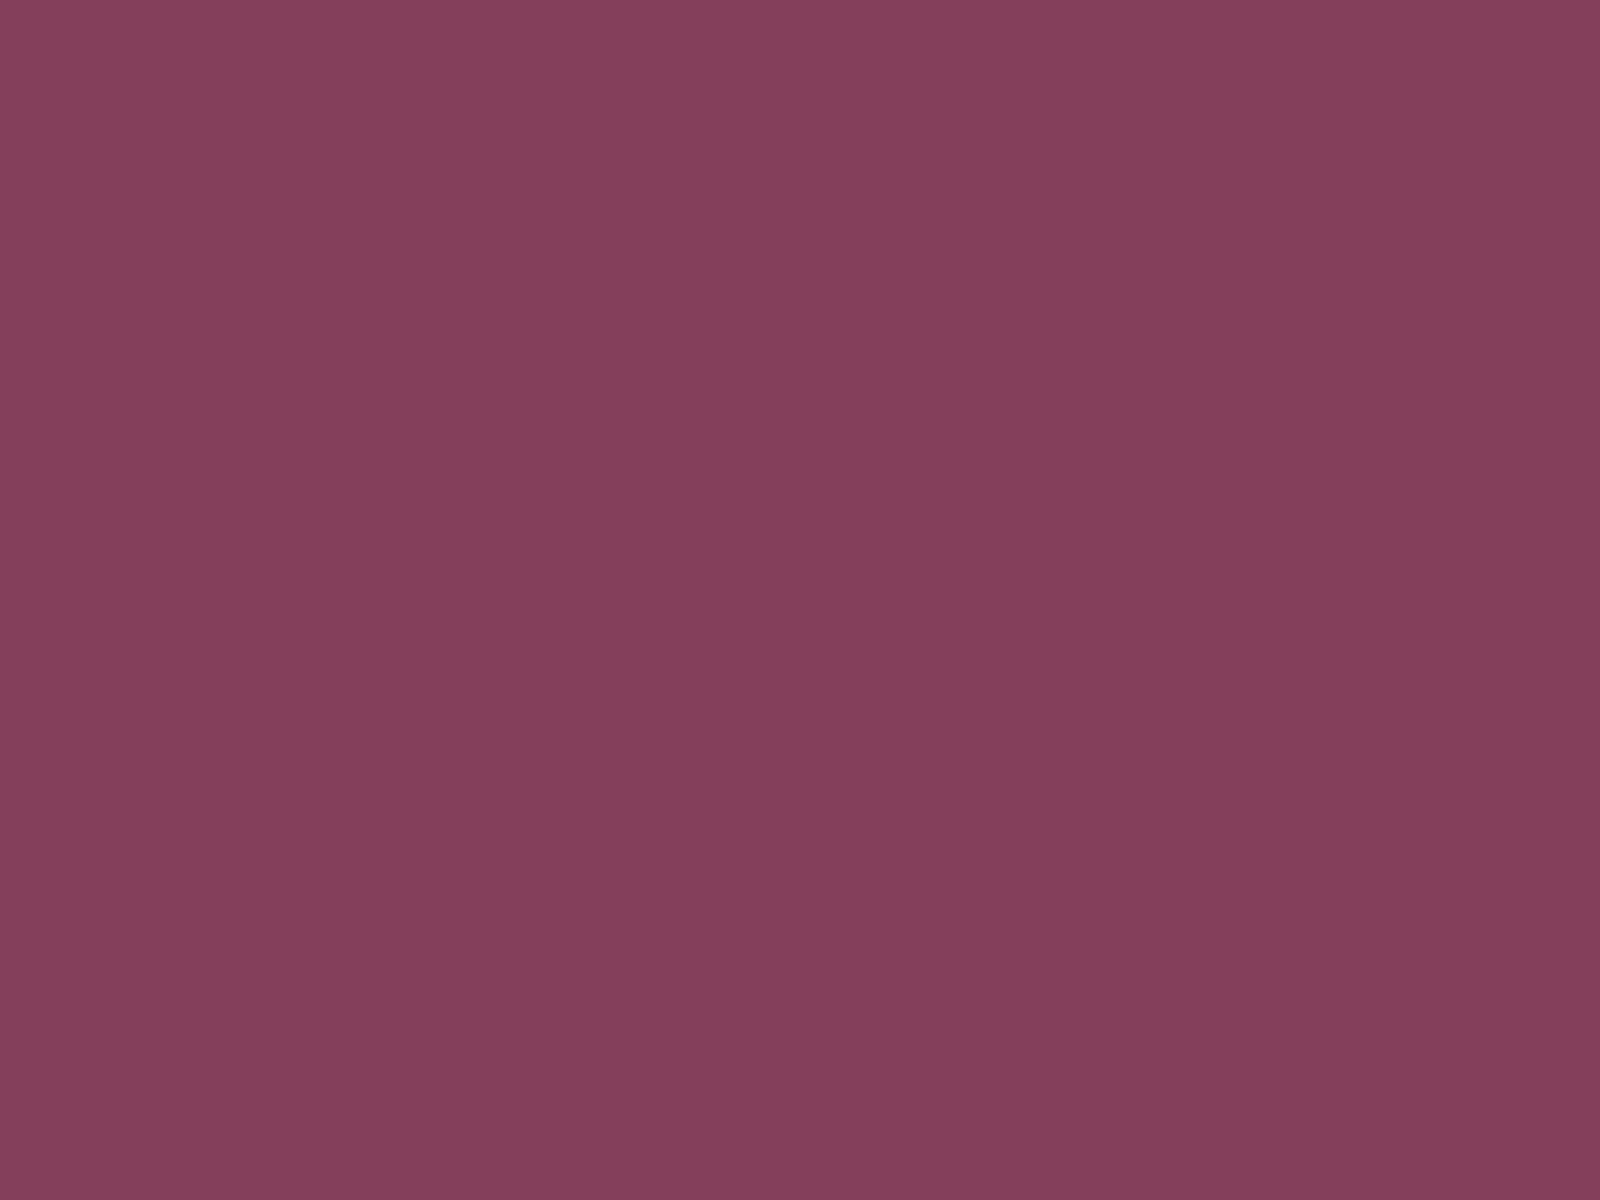 1600x1200 Deep Ruby Solid Color Background